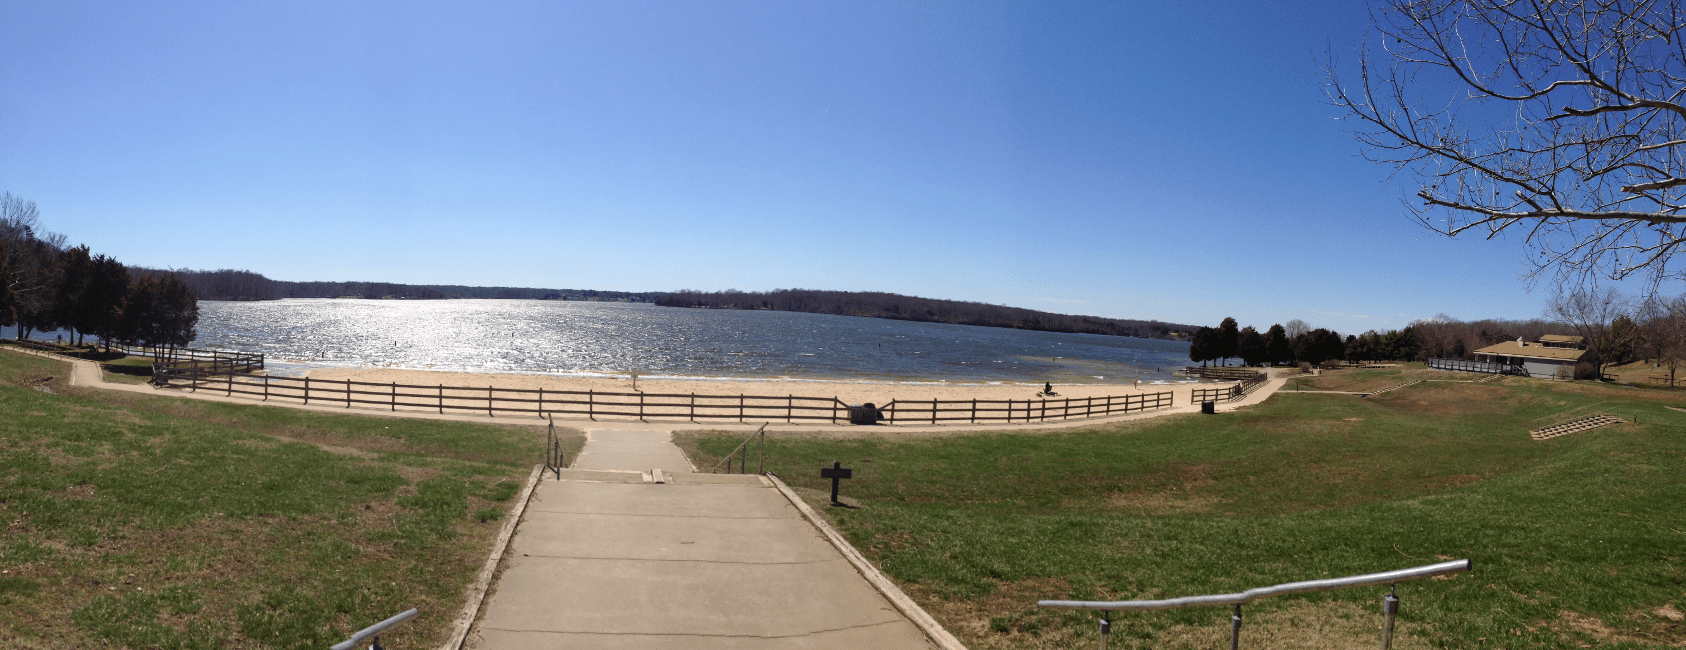 The swimming beach at Lake Anna State Park in Virginia, USA